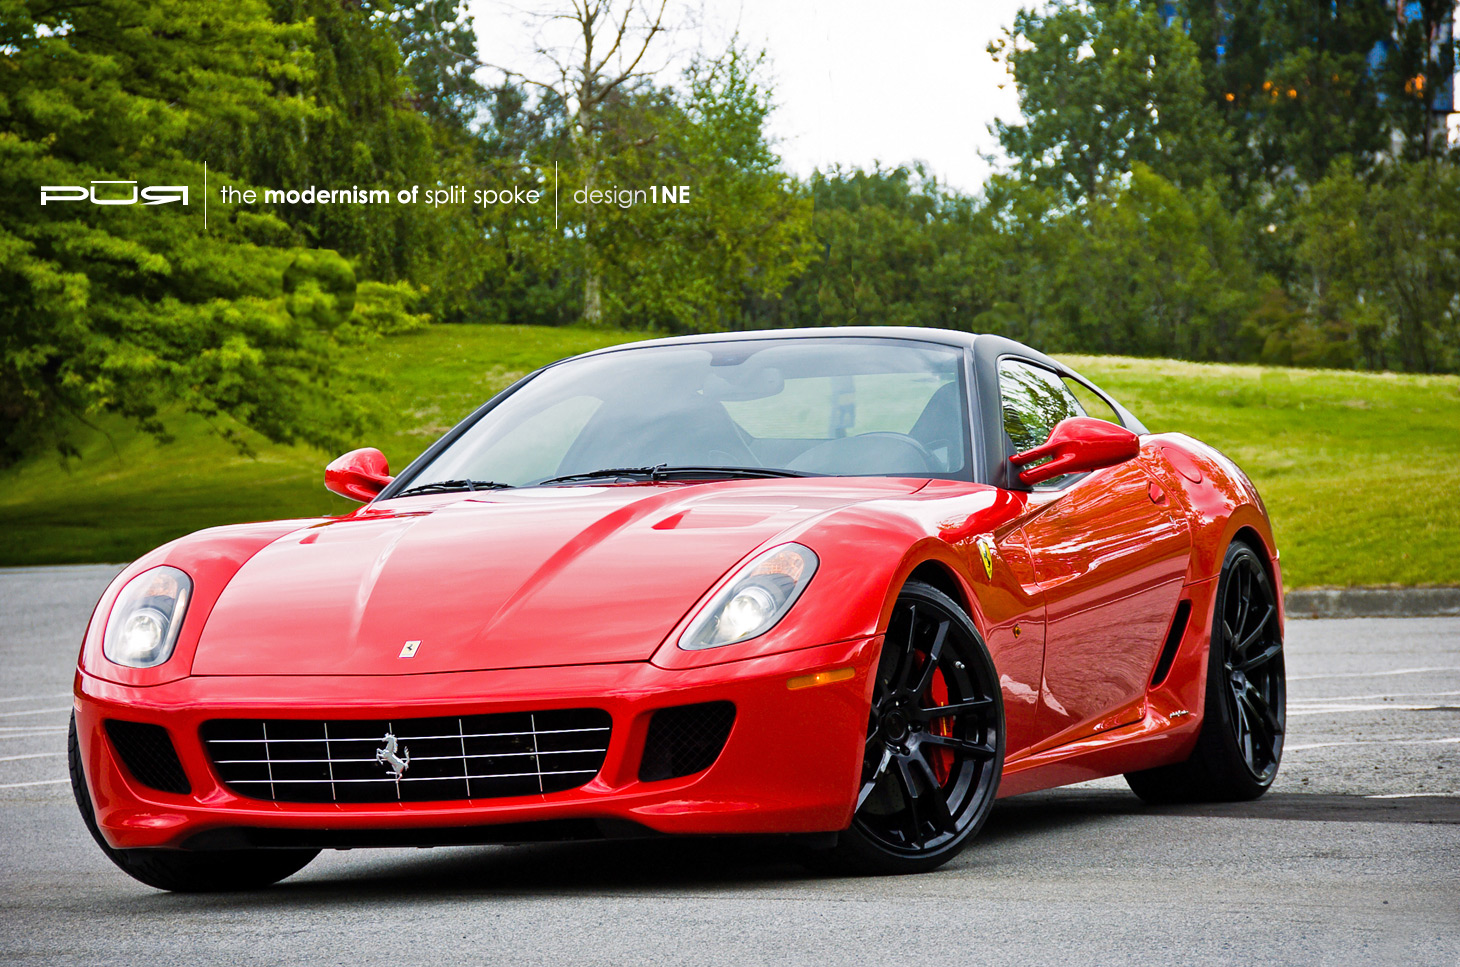 photoshoot pur 1ne in gloss black on ferrari 599 gtb. Black Bedroom Furniture Sets. Home Design Ideas